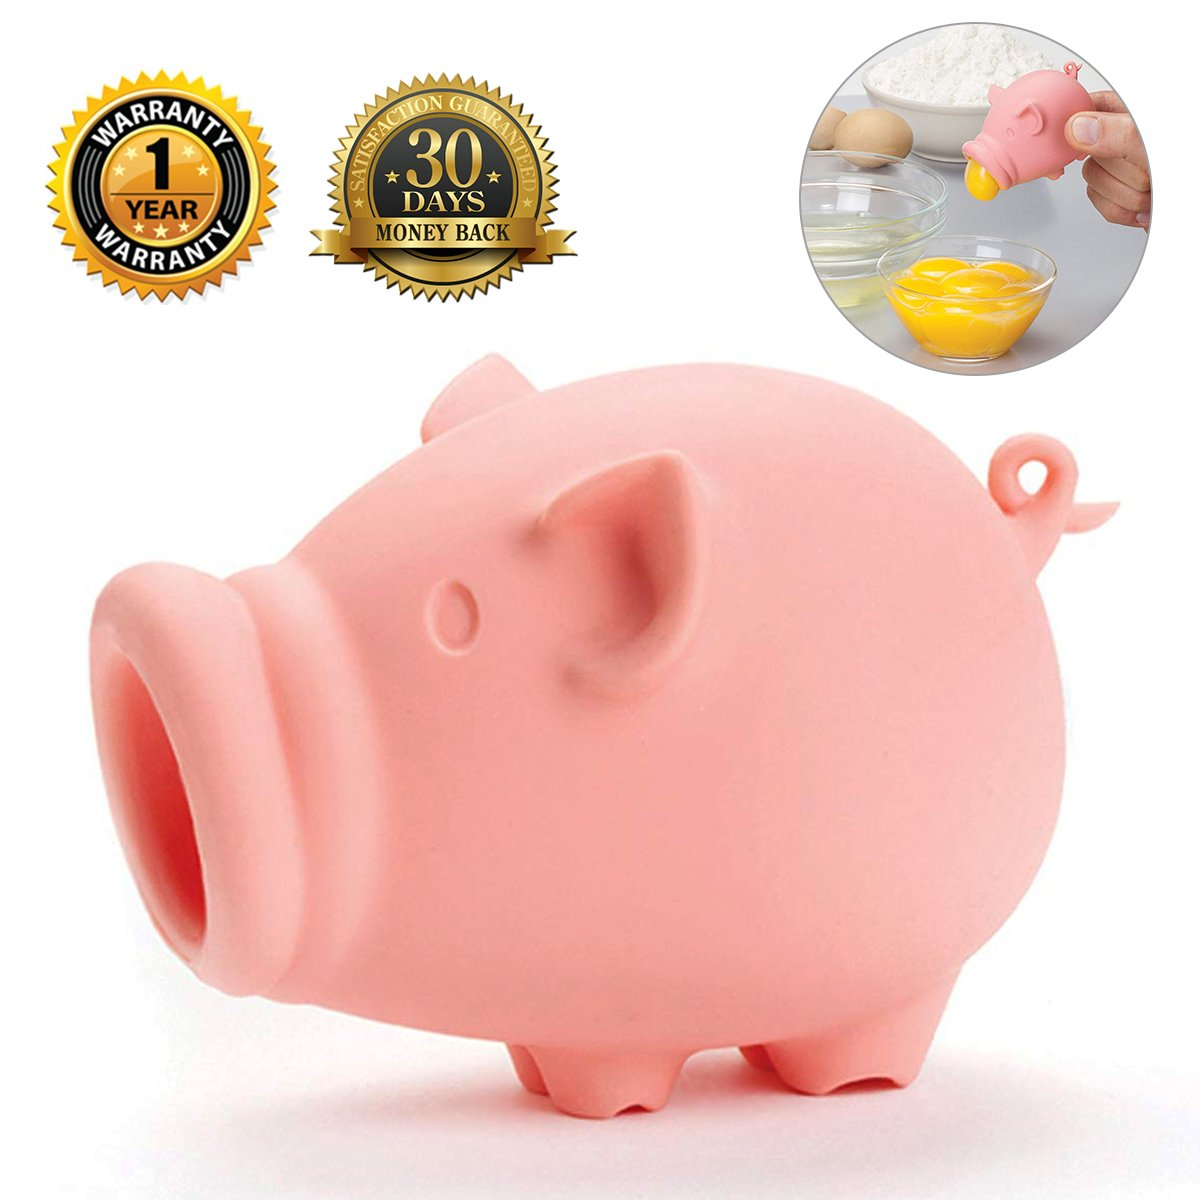 Egg Separator Food Grade Silicone Egg Separator Pig Yolk Extractor Divider Kitchen Tool Gadget Cooking Baking Tool Egg Extractor Pig Lips Release Remove Egg Yolks with Ease